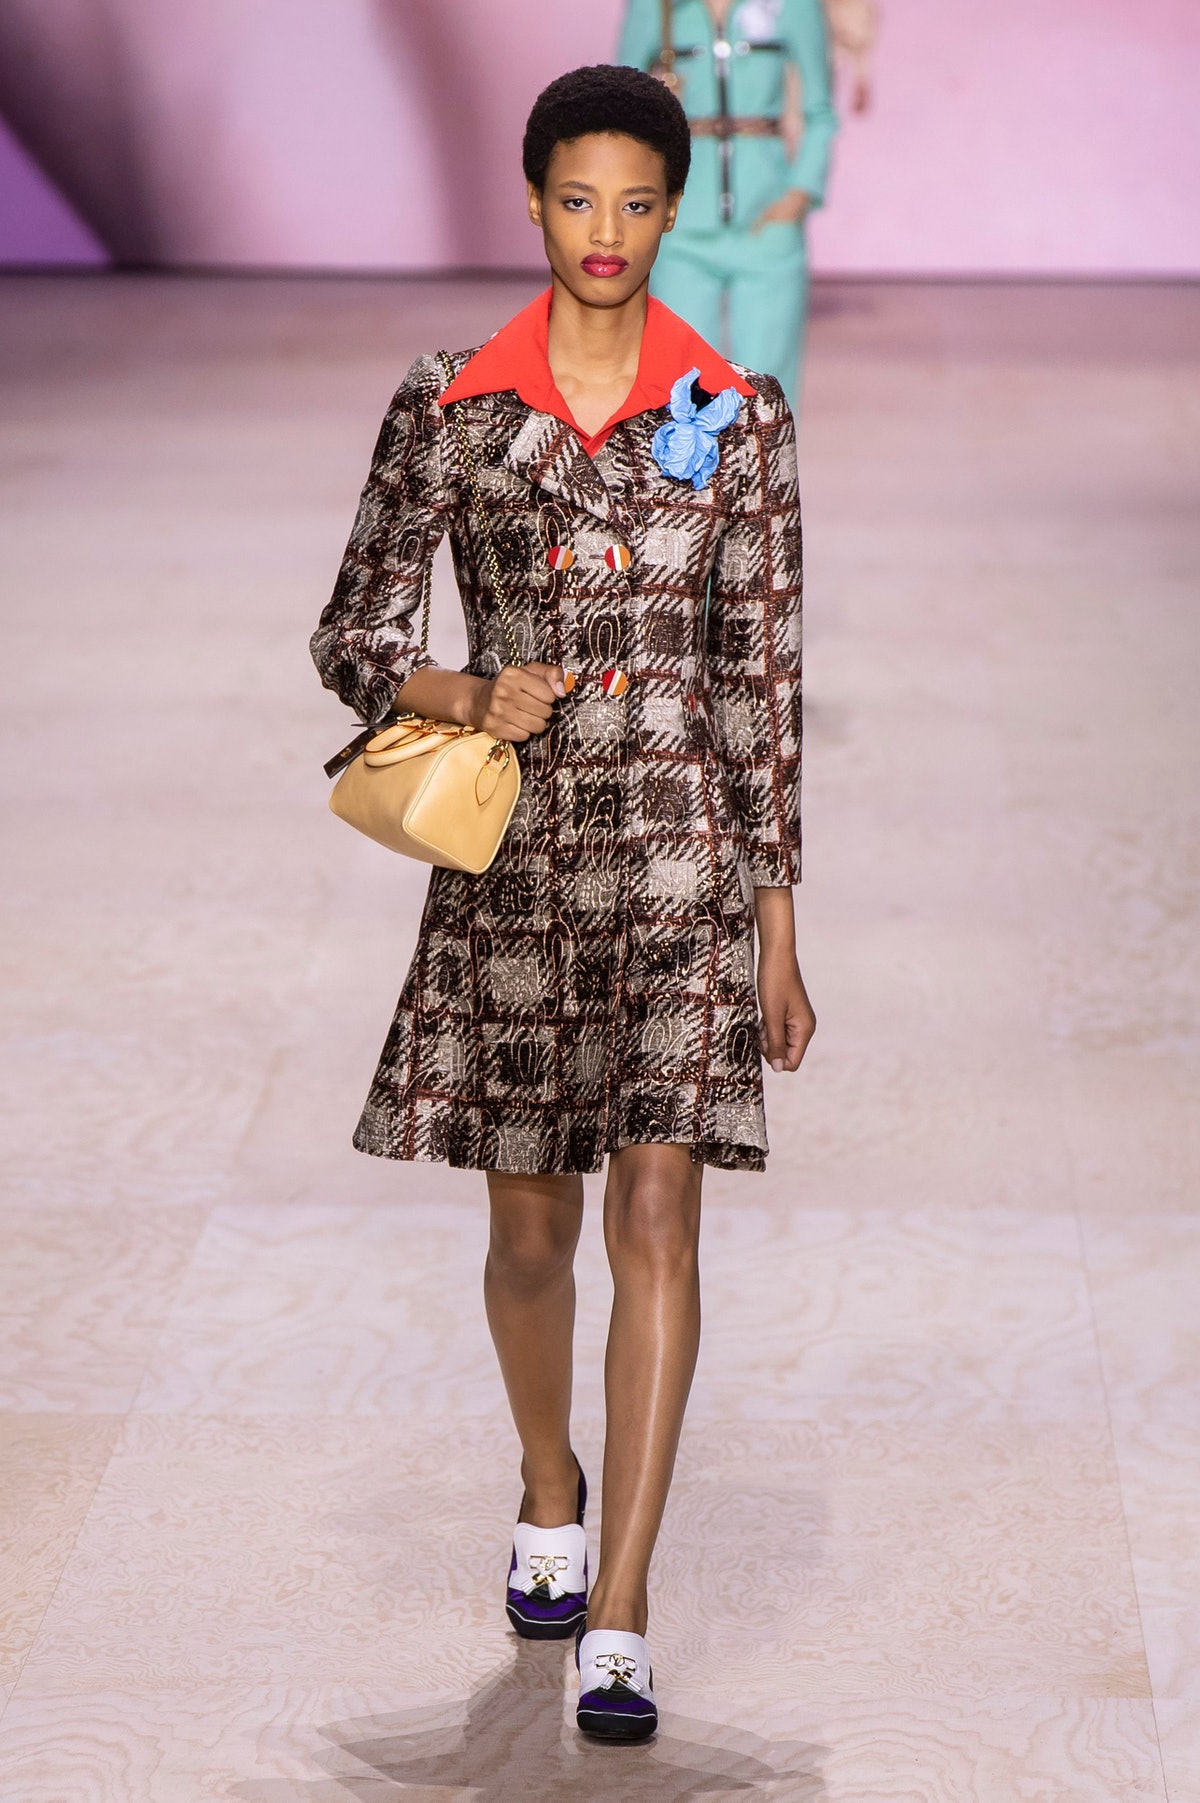 70s runway trend for Spring 2020 at Louis Vuitton